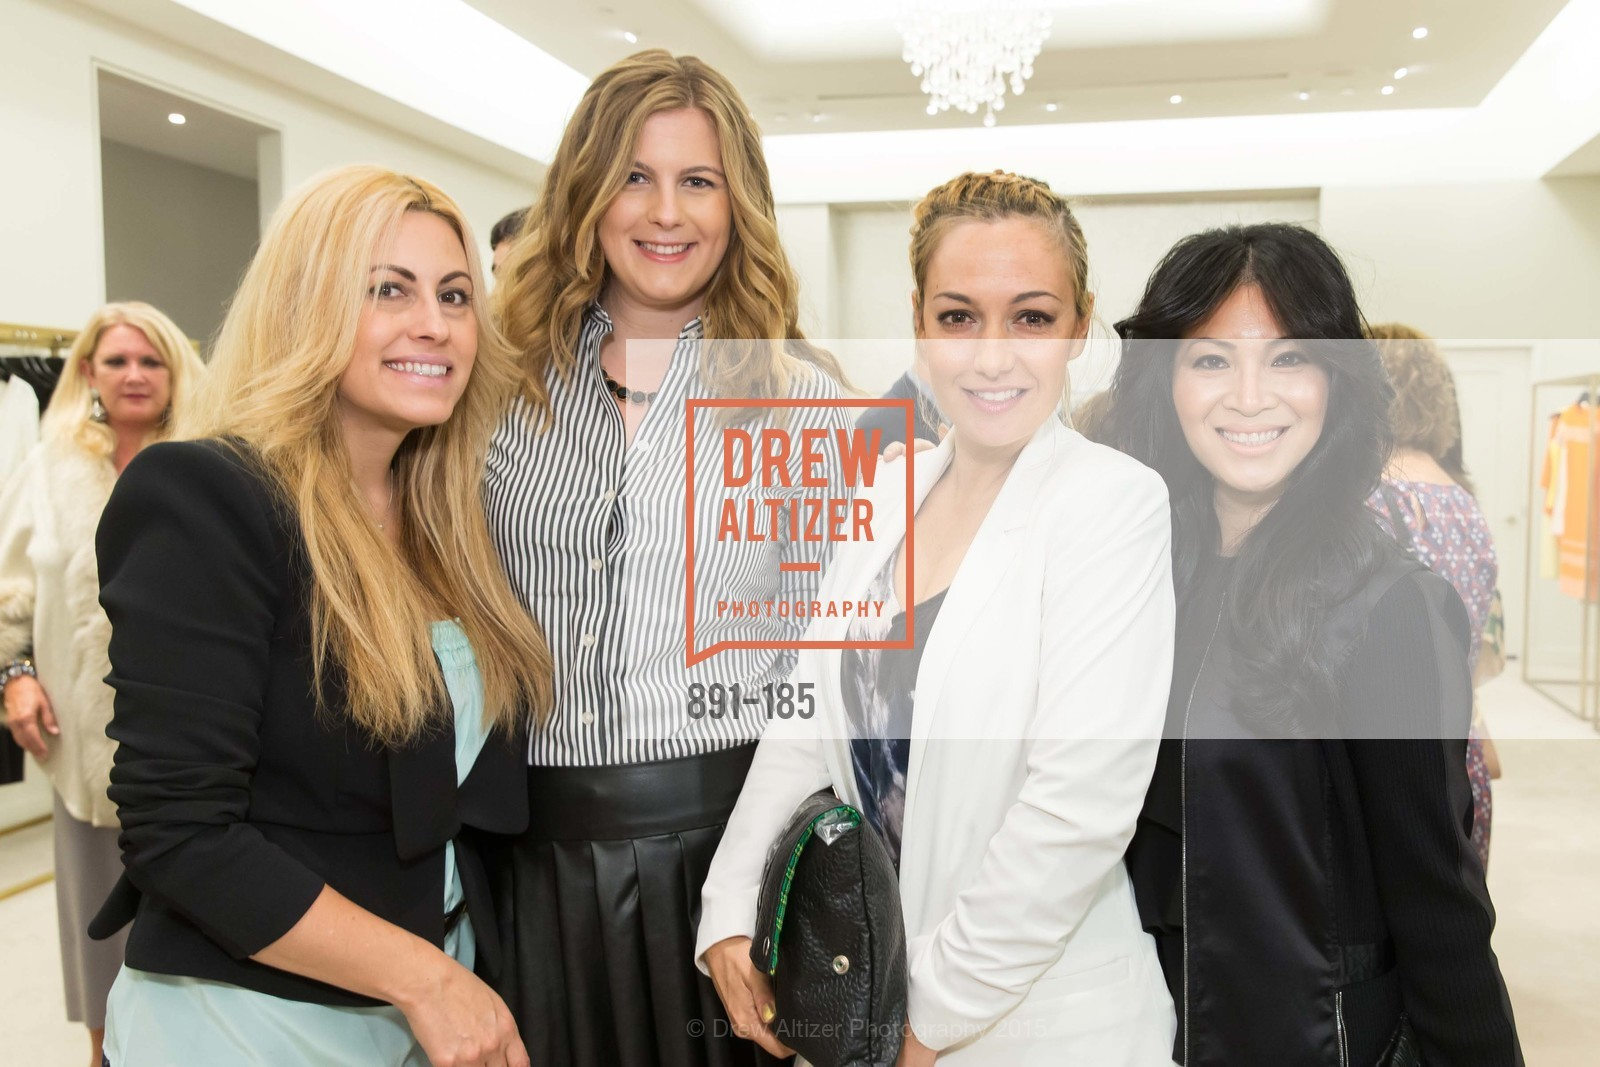 Kimber Frankel, Brittany O'leary, Kelly Jackson, Morgan Lee, Fashion Fights Arthritis Launch Party at St. John, St. John Boutique. 767 Market Street, June 25th, 2015,Drew Altizer, Drew Altizer Photography, full-service agency, private events, San Francisco photographer, photographer california